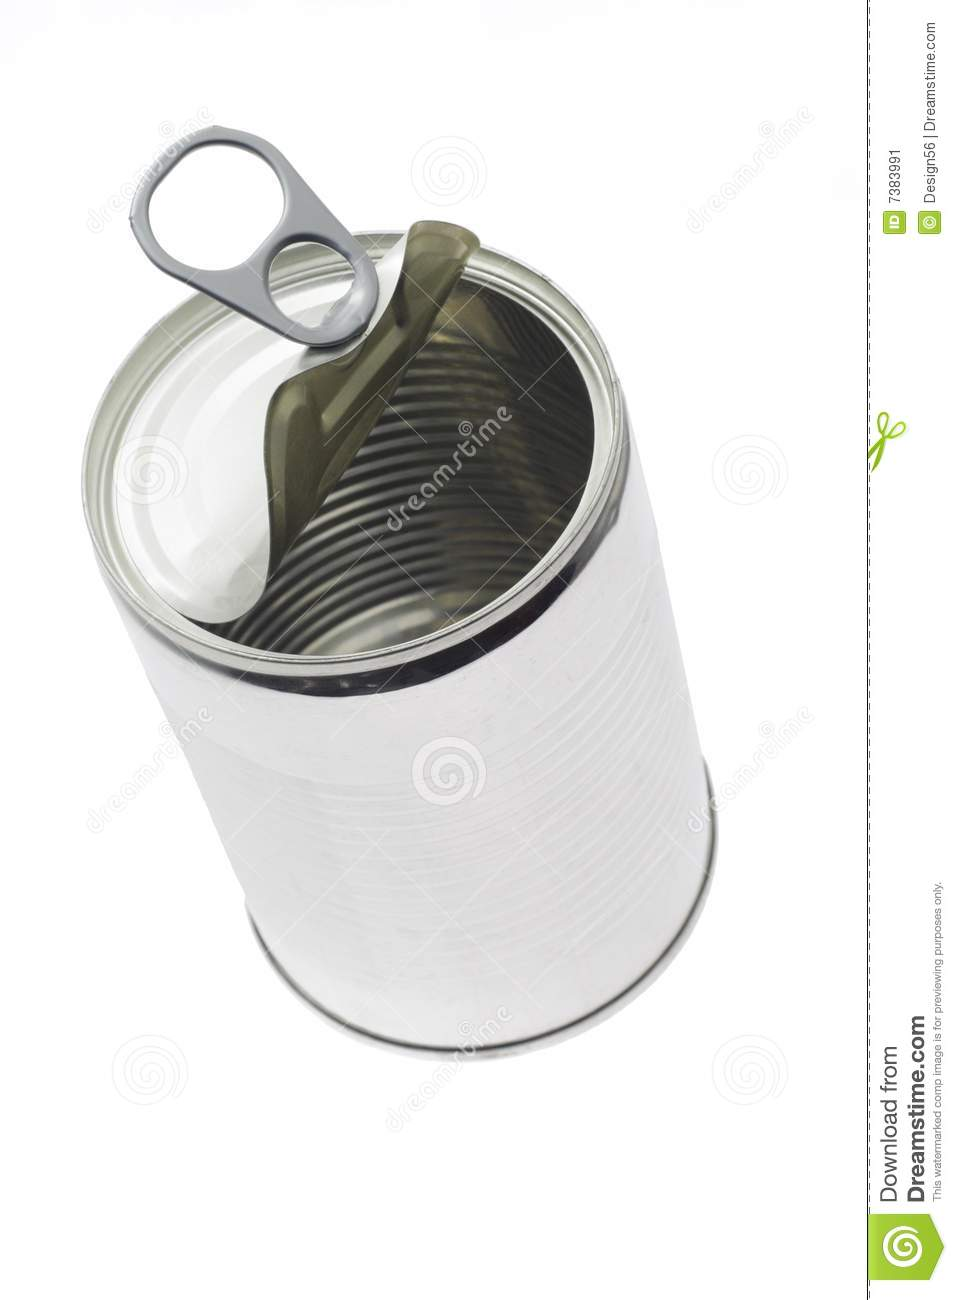 Empty Tin Can Stock Photography: Empty Tin Can Stock Image. Image Of Ring, Container